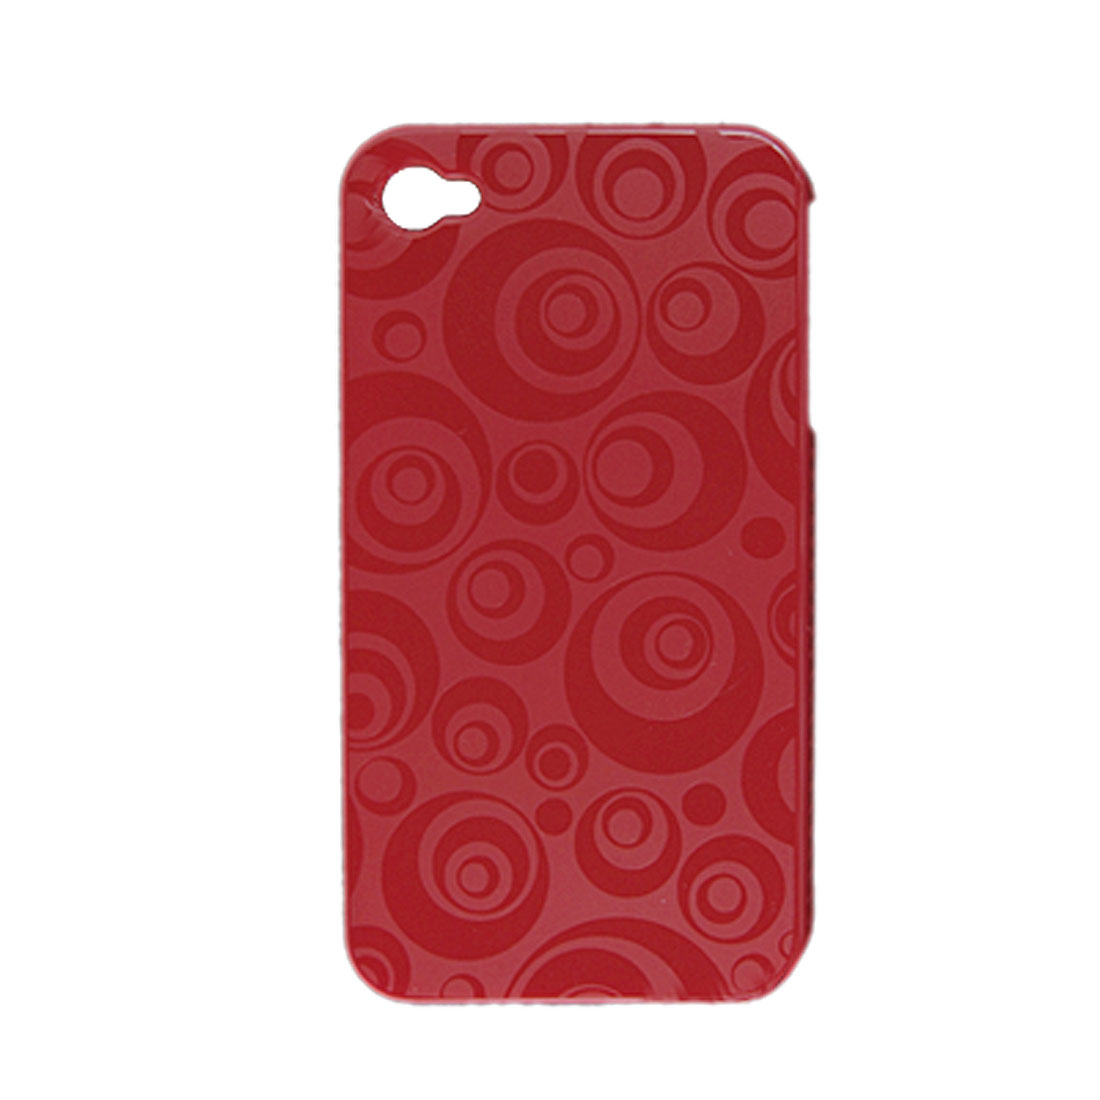 Hard Plastic Circle Pattern Red Back Case Protector for iPhone 4 4G